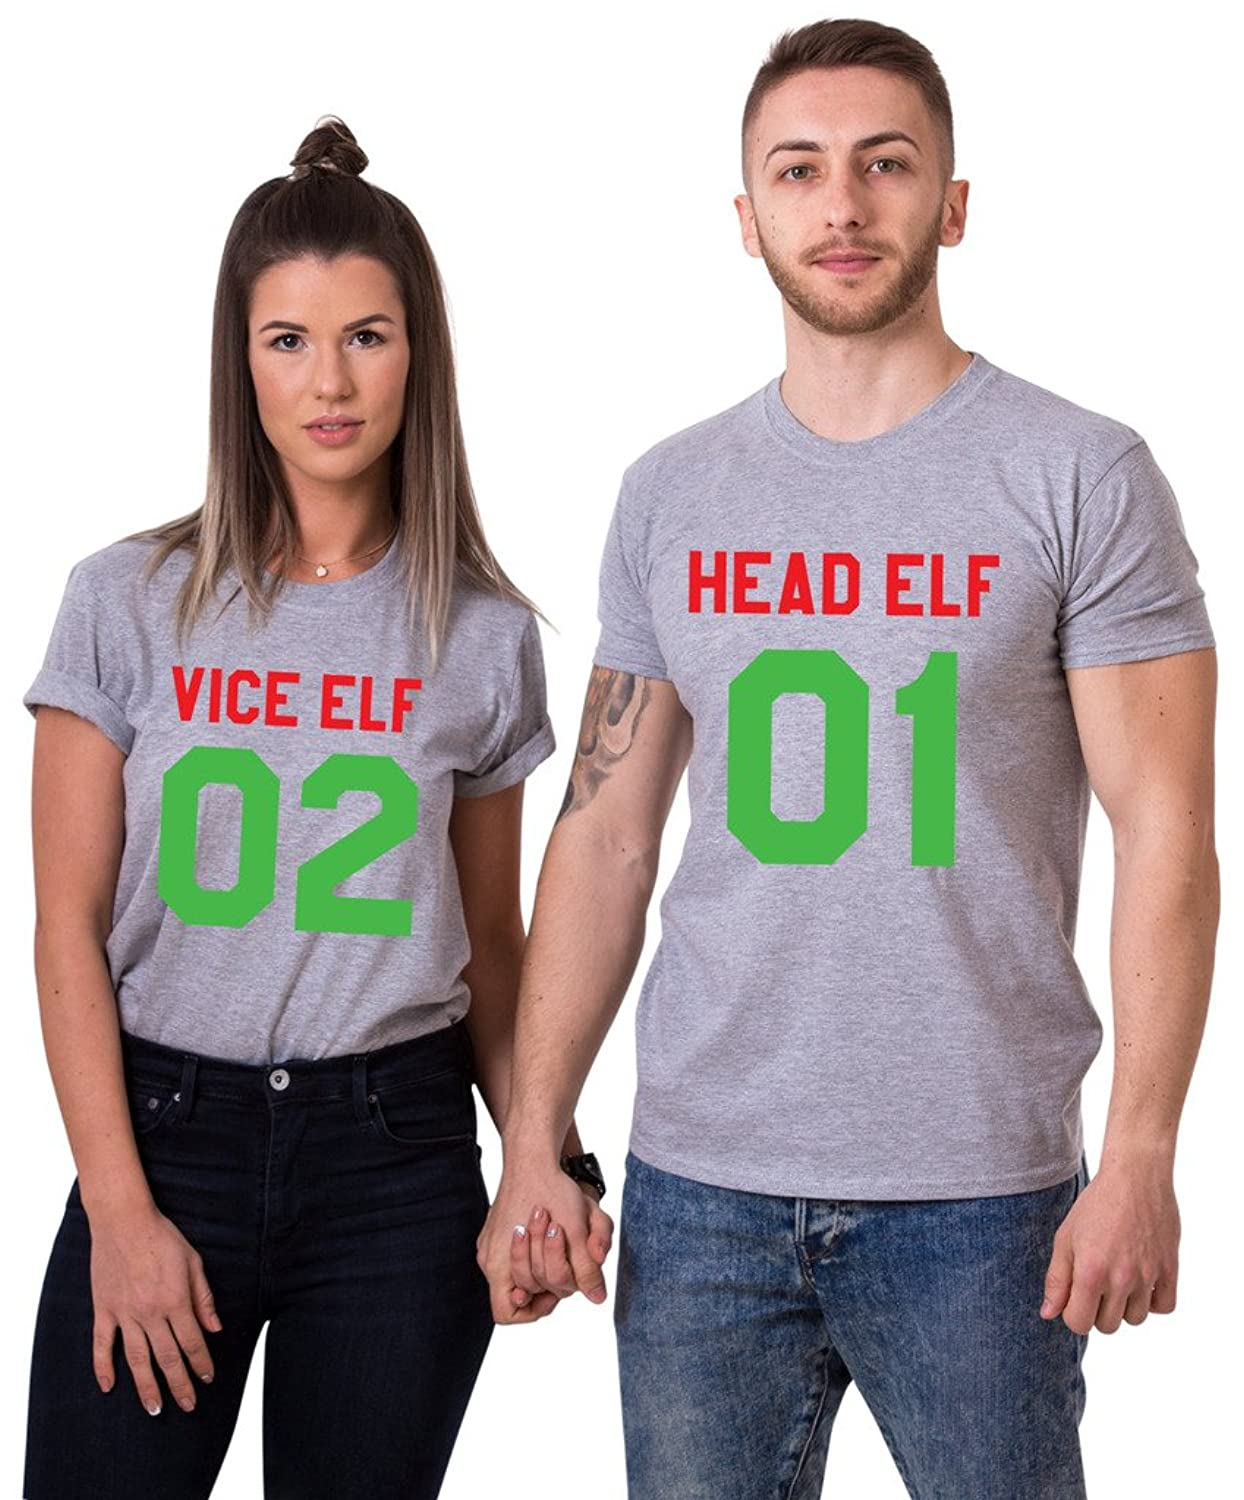 Vice Elf 02 Head Elf 01 Matching T-Shirts, Couple Outfit (Grey)